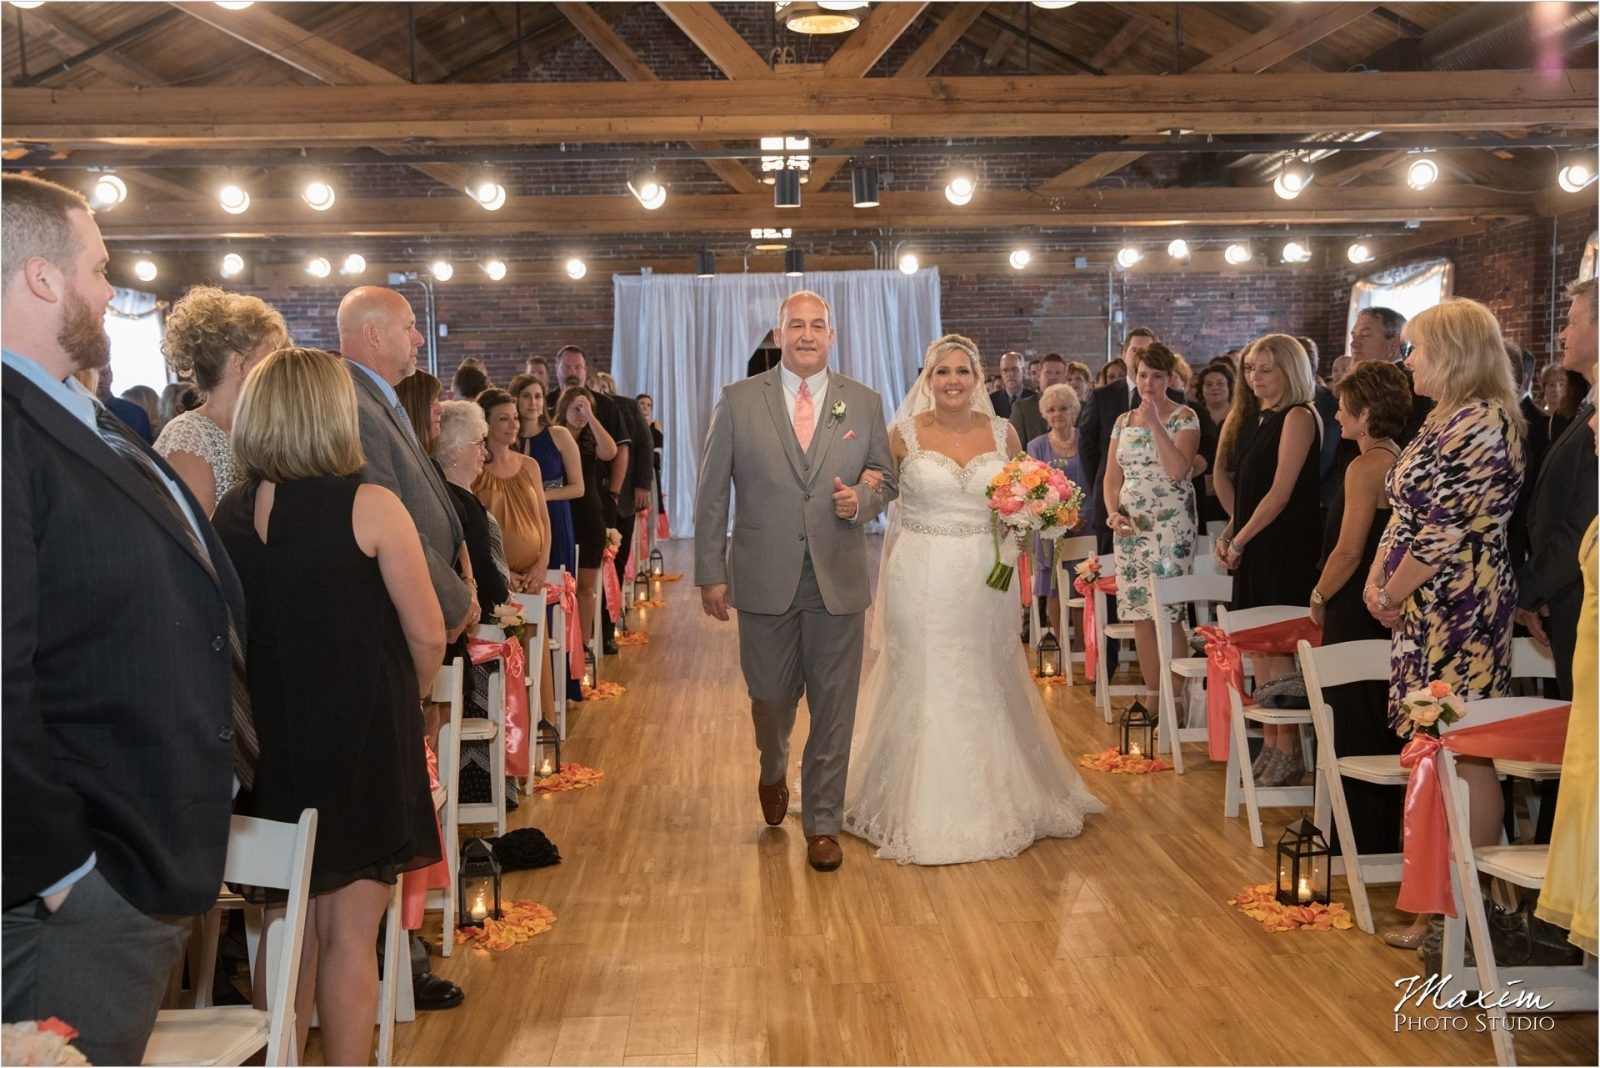 Top of the Market Dayton Ohio Wedding ceremony